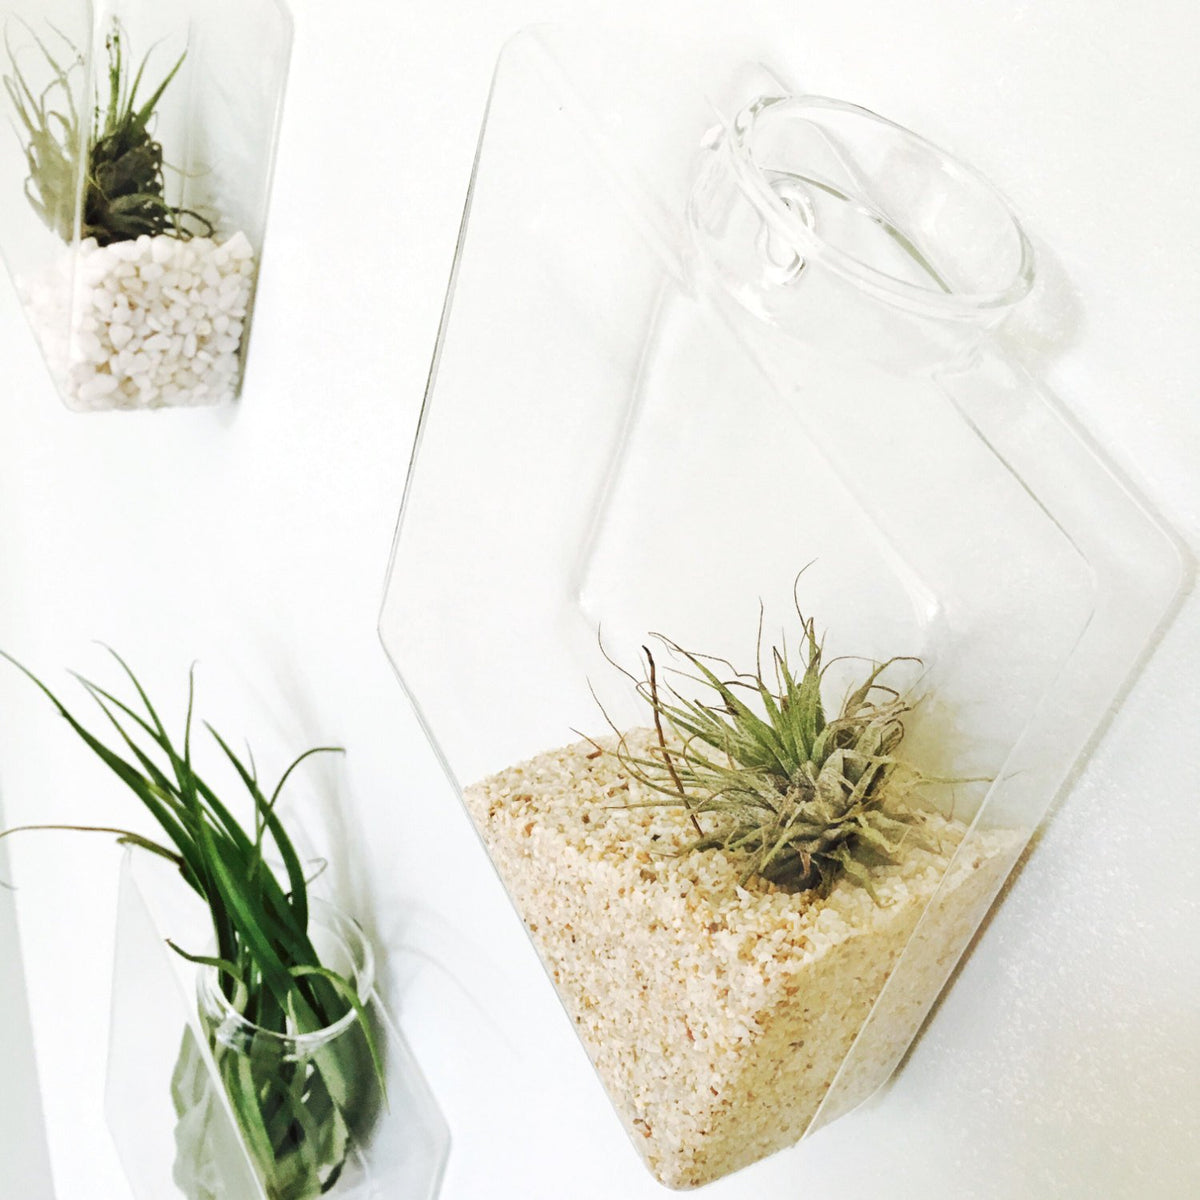 Pack of 10 Wall Hanging Air Plant Terrariums Air Plant Containers Glass Hanging Planters